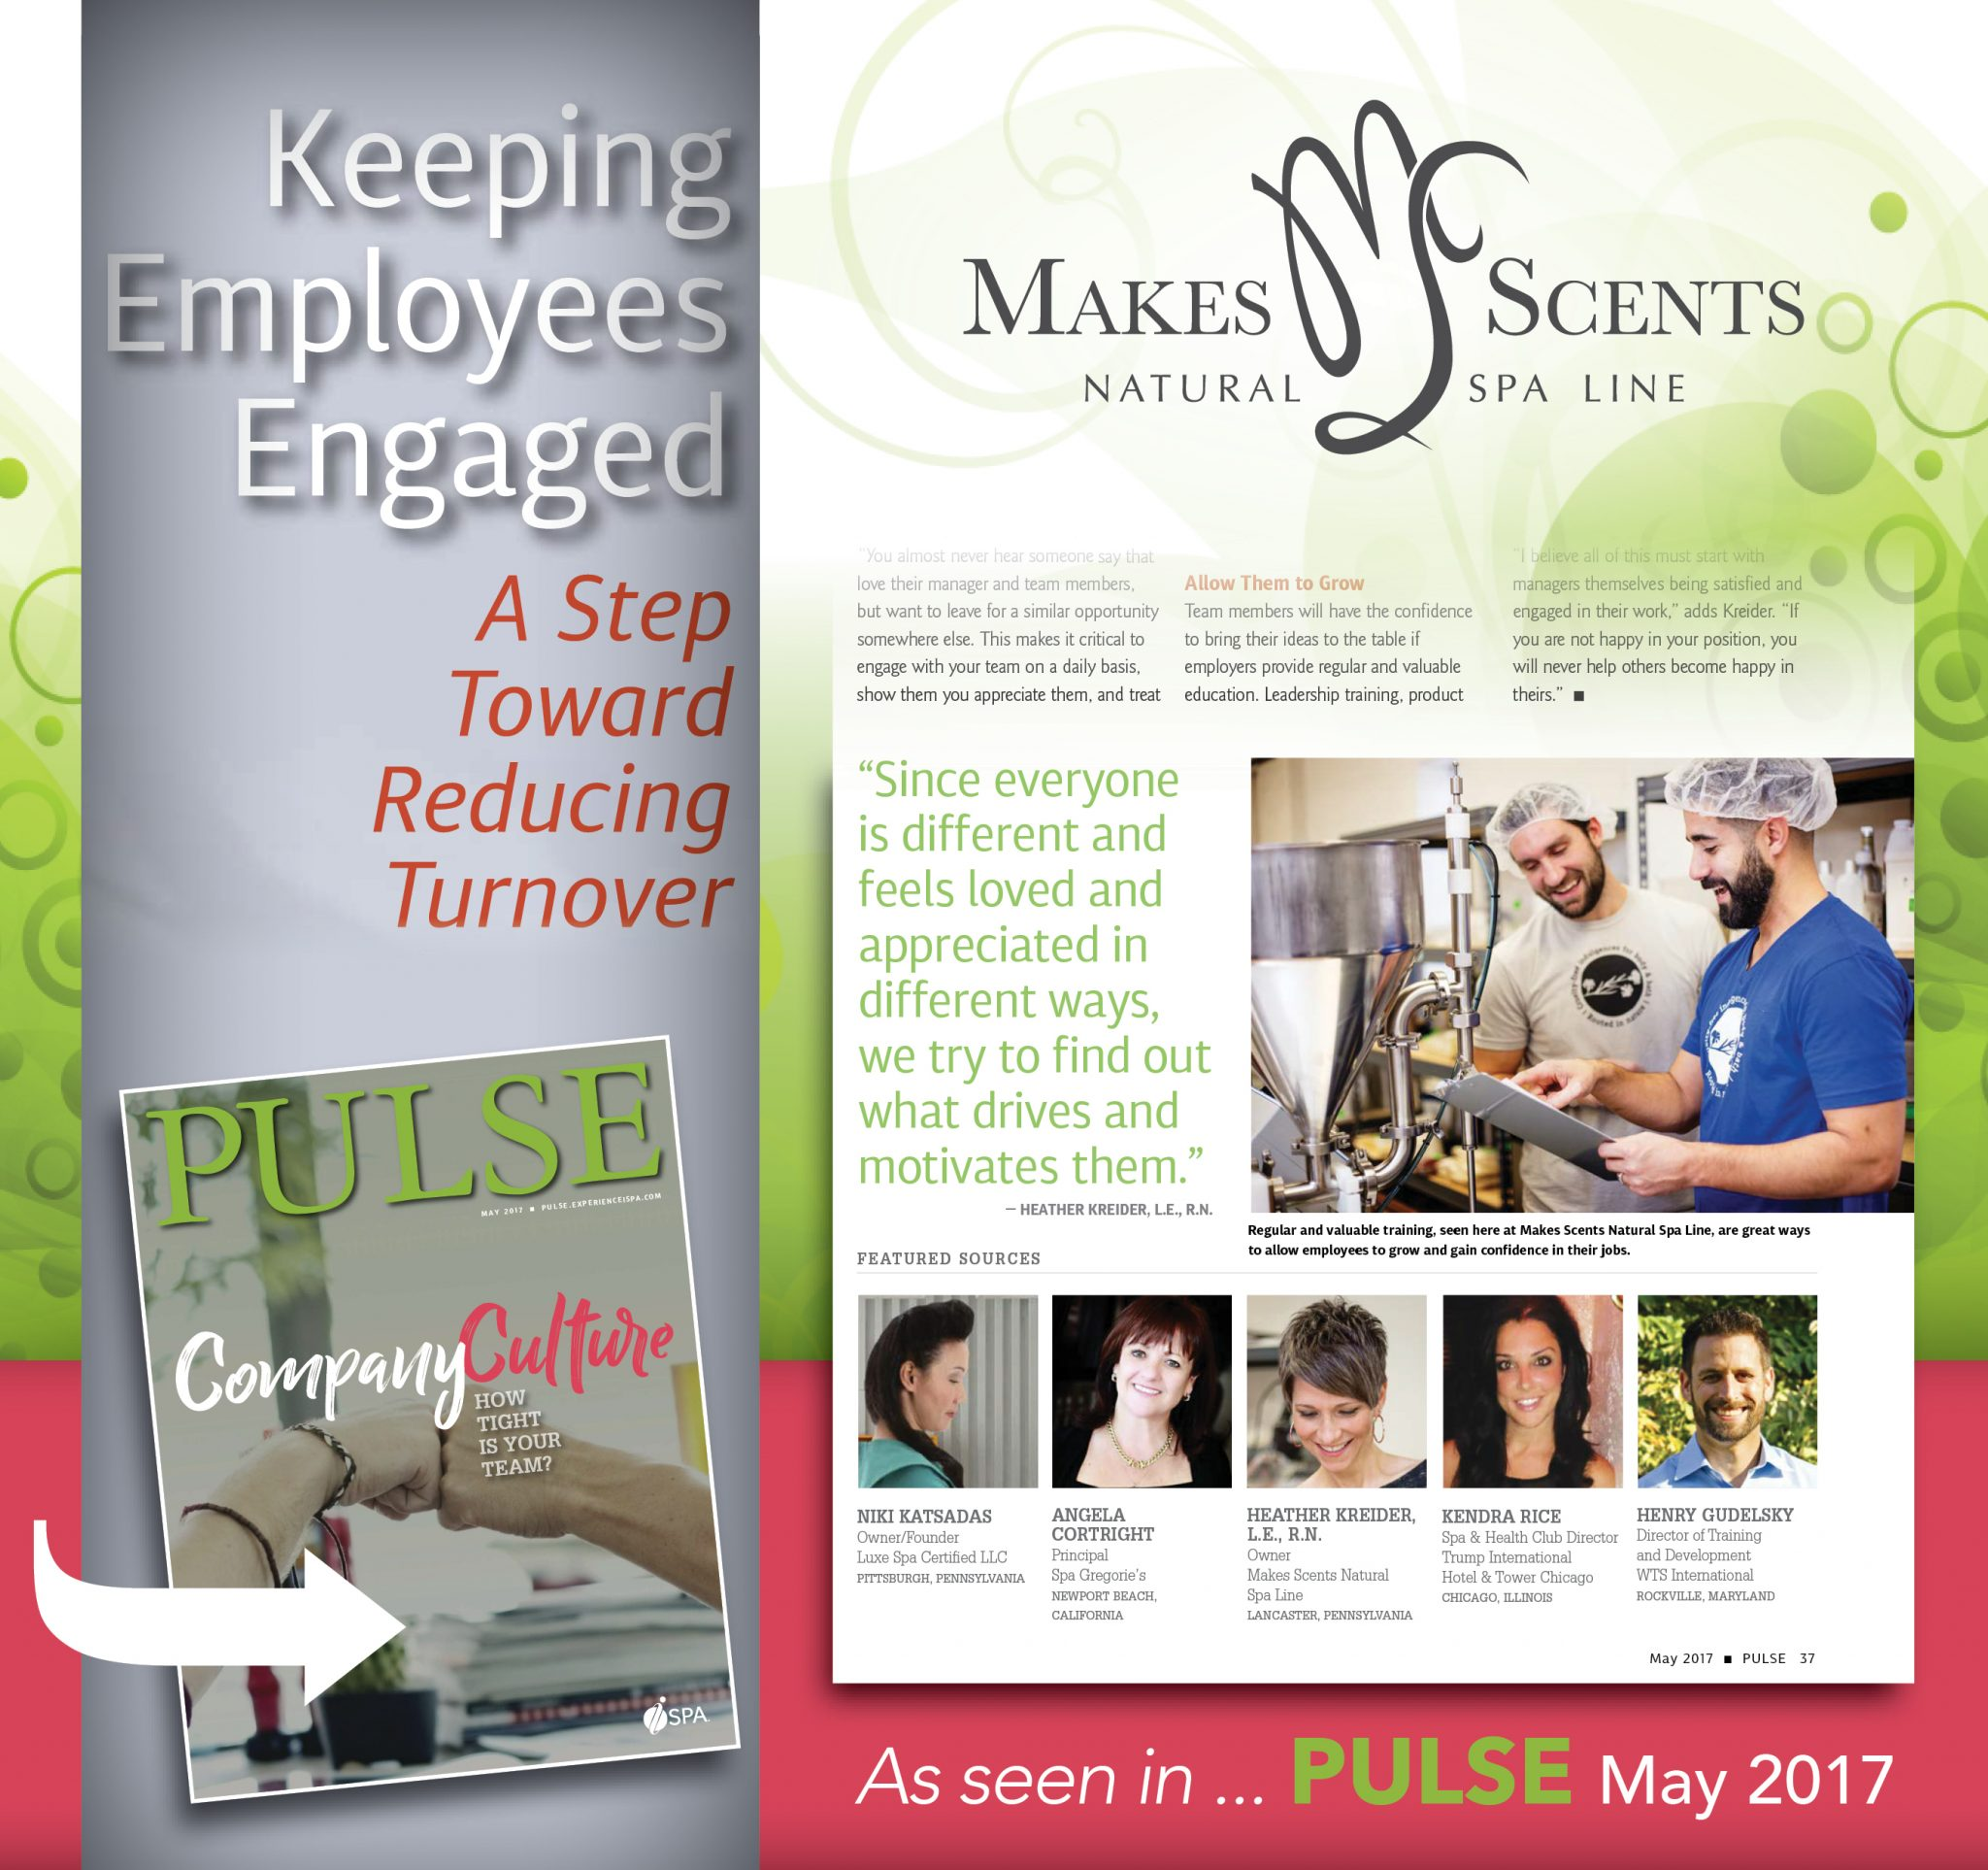 International Spa Association - Pulse Magazine - Keeping Employees Engaged - Makes Scents Natural Spa Line